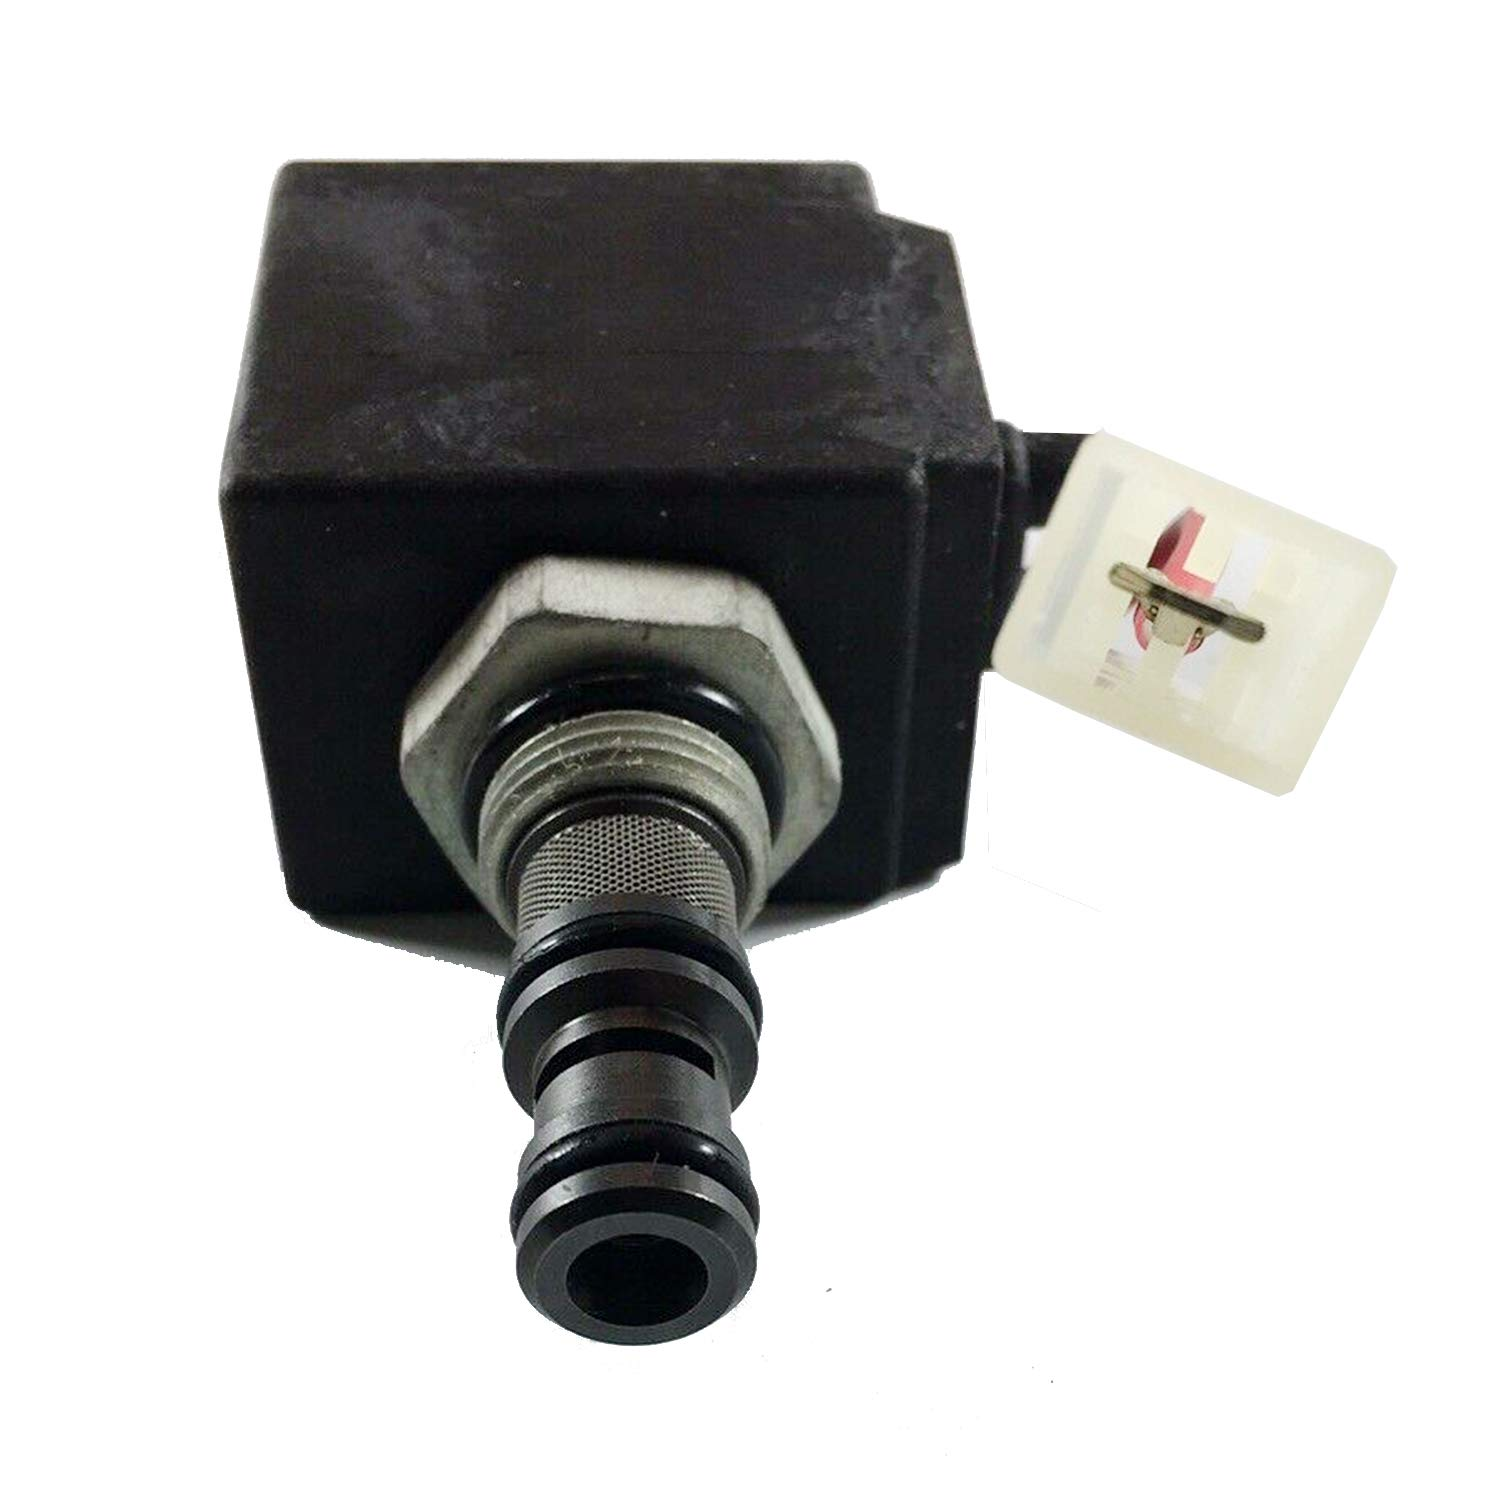 Solarhome 81870291 CAR127831 Solenoid Valve for Ford//NH Tractors 5110 5610 6410 6610 6710 6810 7610 7710 7910 5640 6640 7740 7840 8240 TS90 TS100 TS110